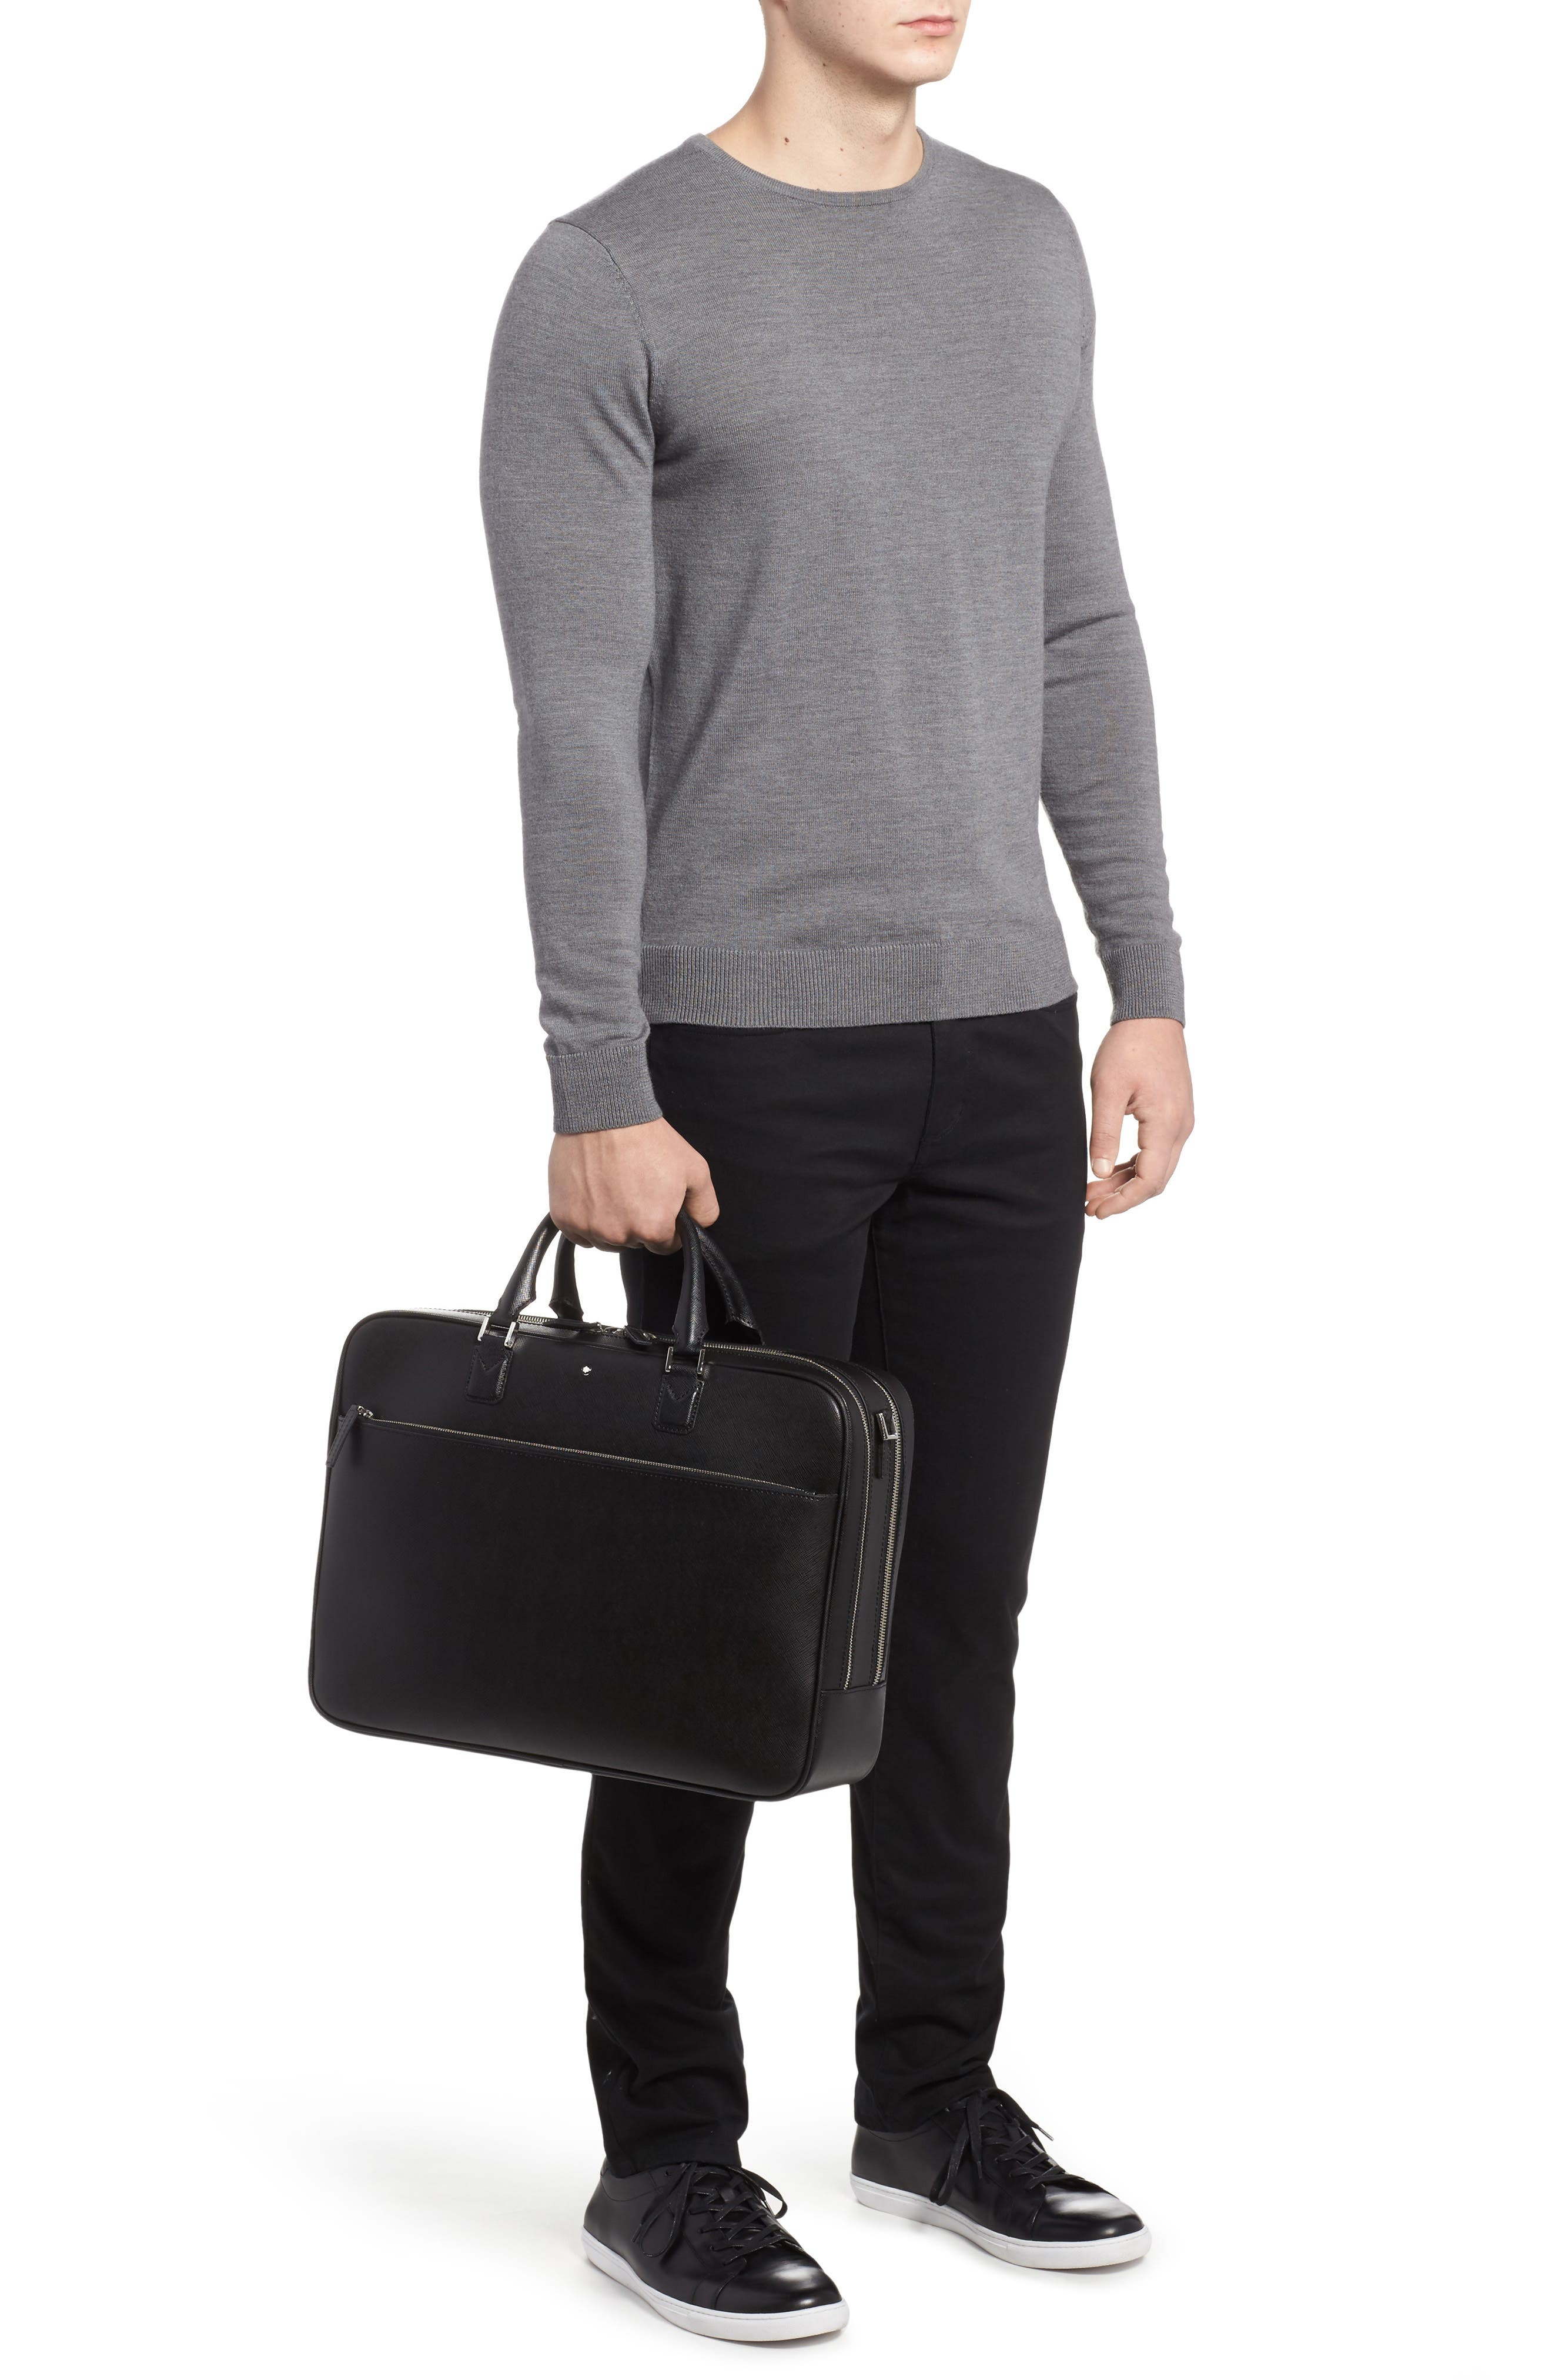 MONTBLANC, Sartorial Leather Briefcase, Alternate thumbnail 2, color, 001